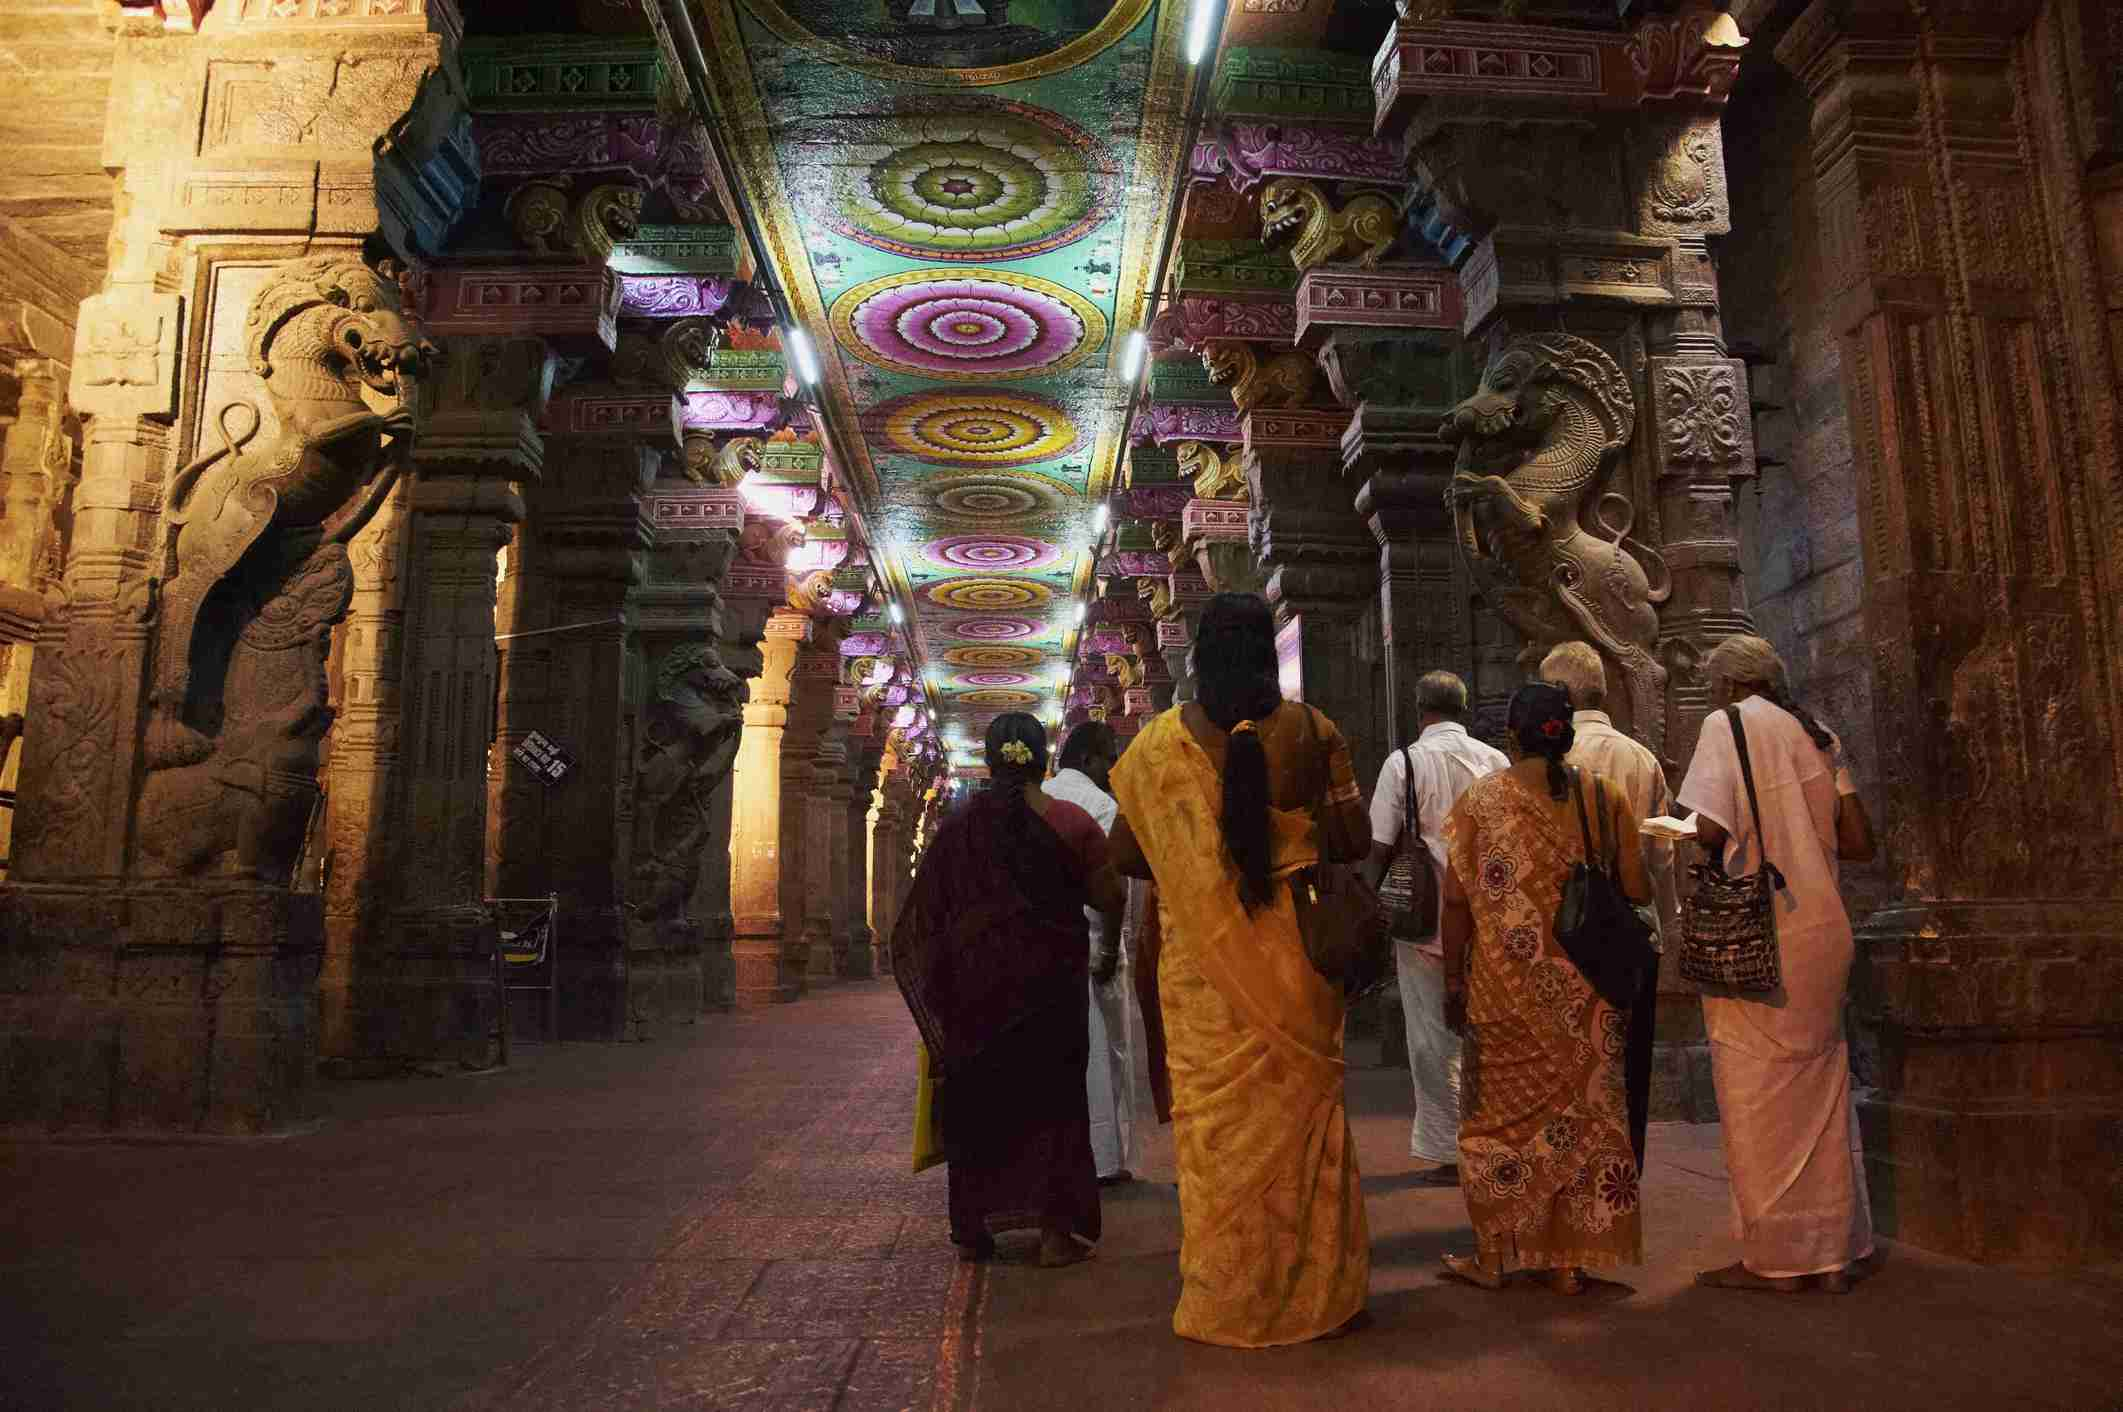 Madurai's Meenakshi Temple and How to Visit It